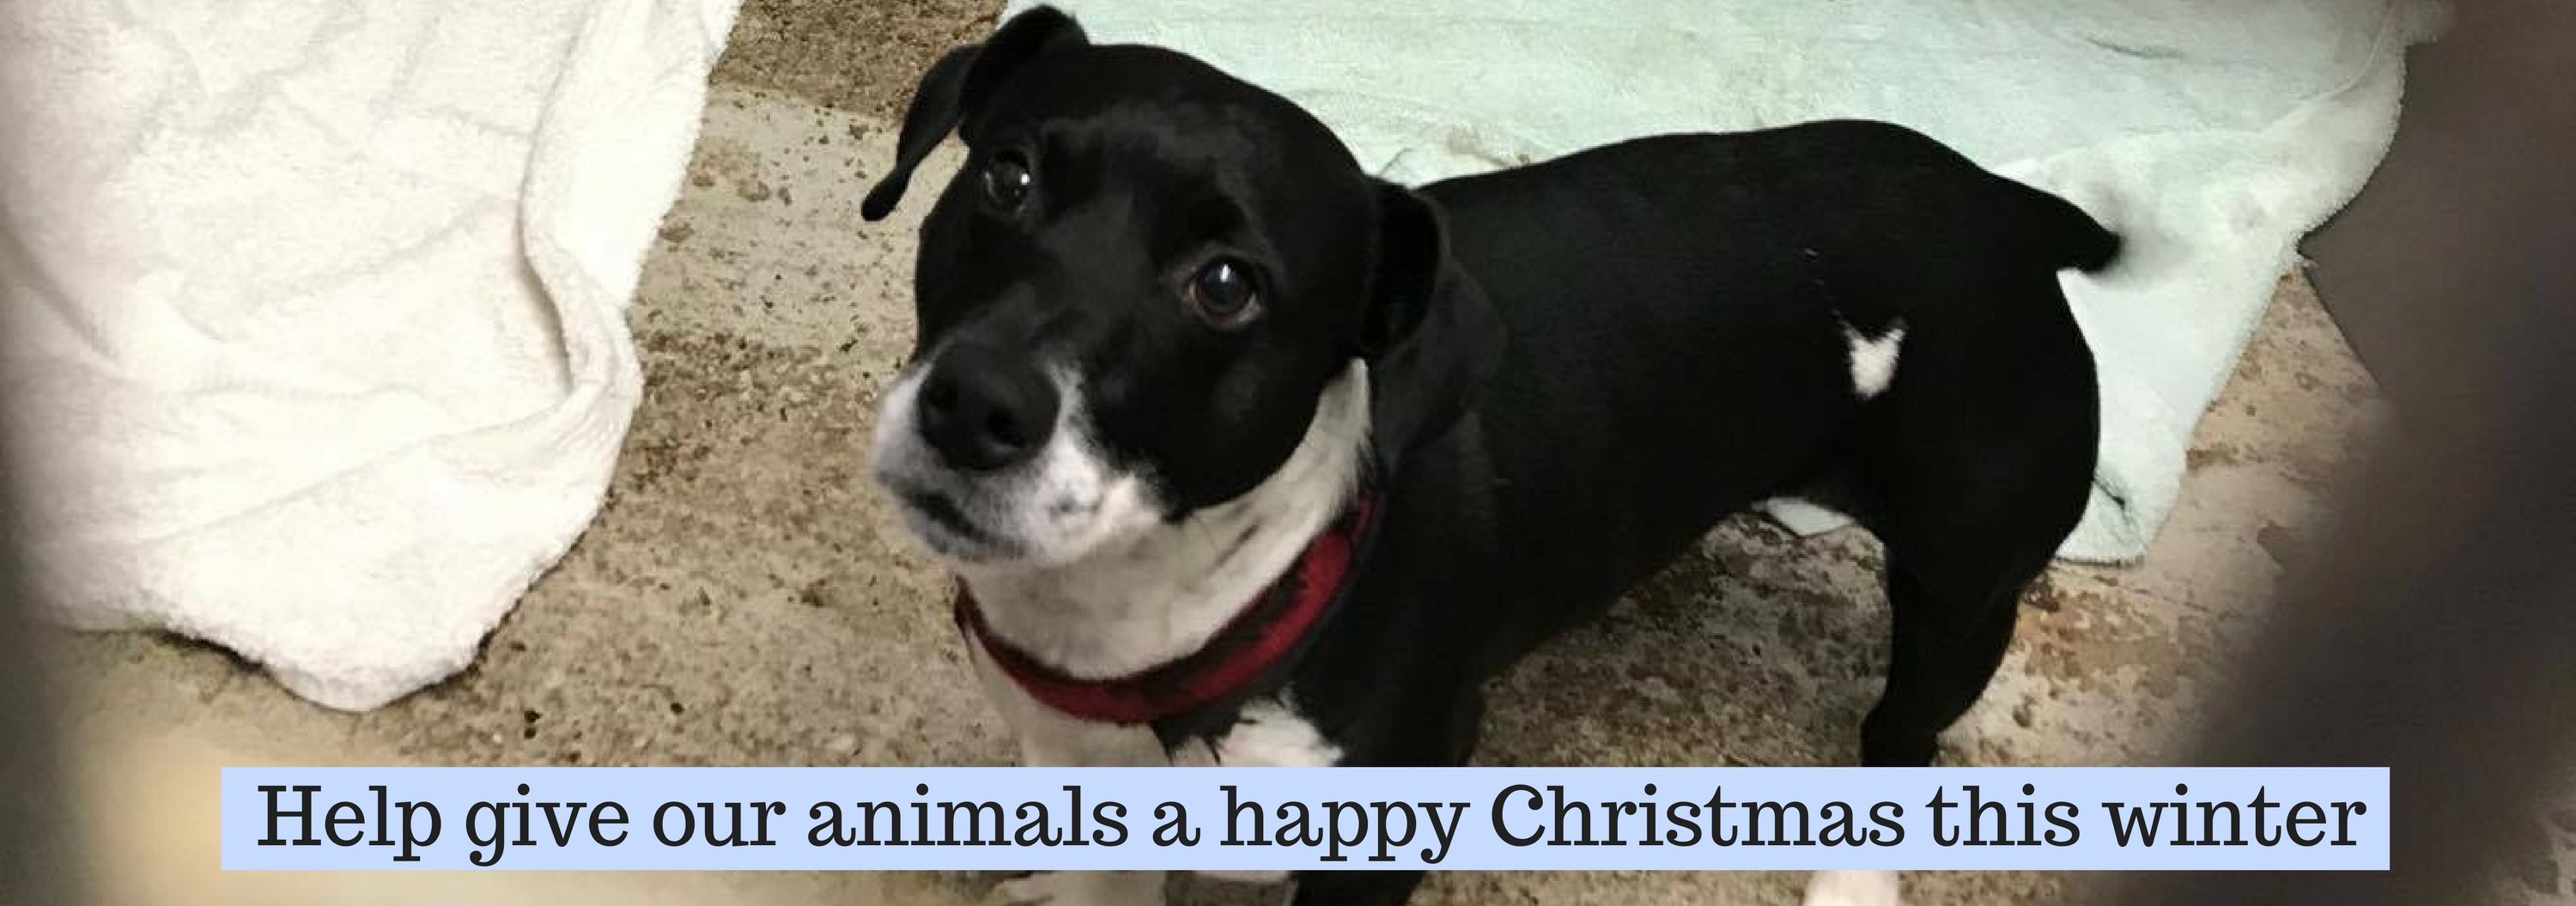 Christmas Helping Homeless.Give A Homeless Pet A Happy Christmas This Winter National